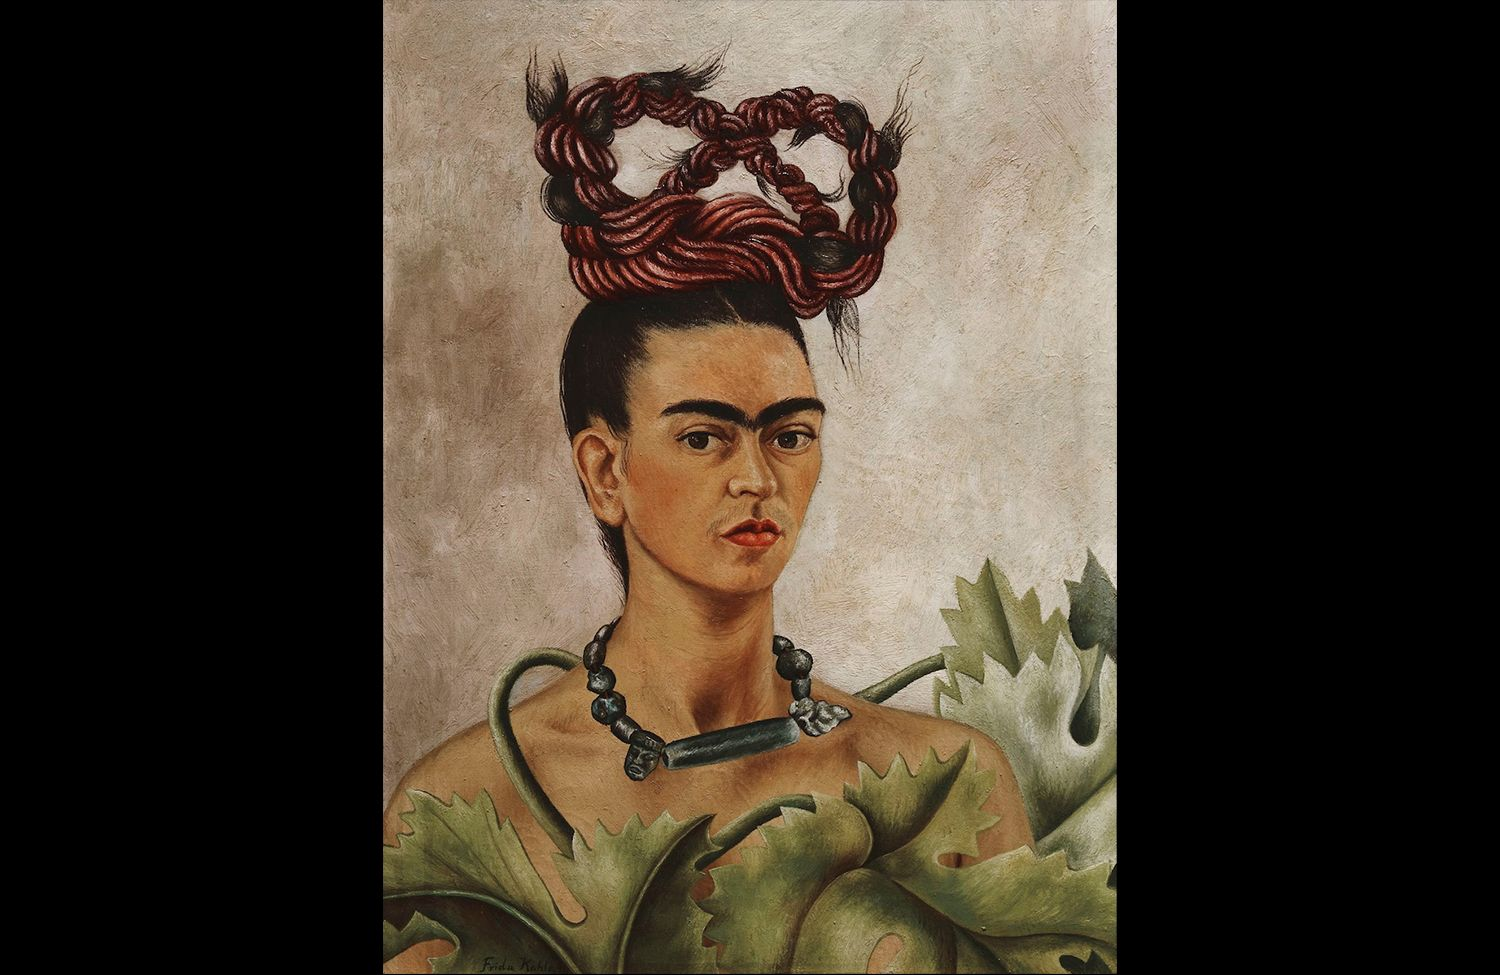 Frida Kahlo: Appearances Can Be Deceiving 7